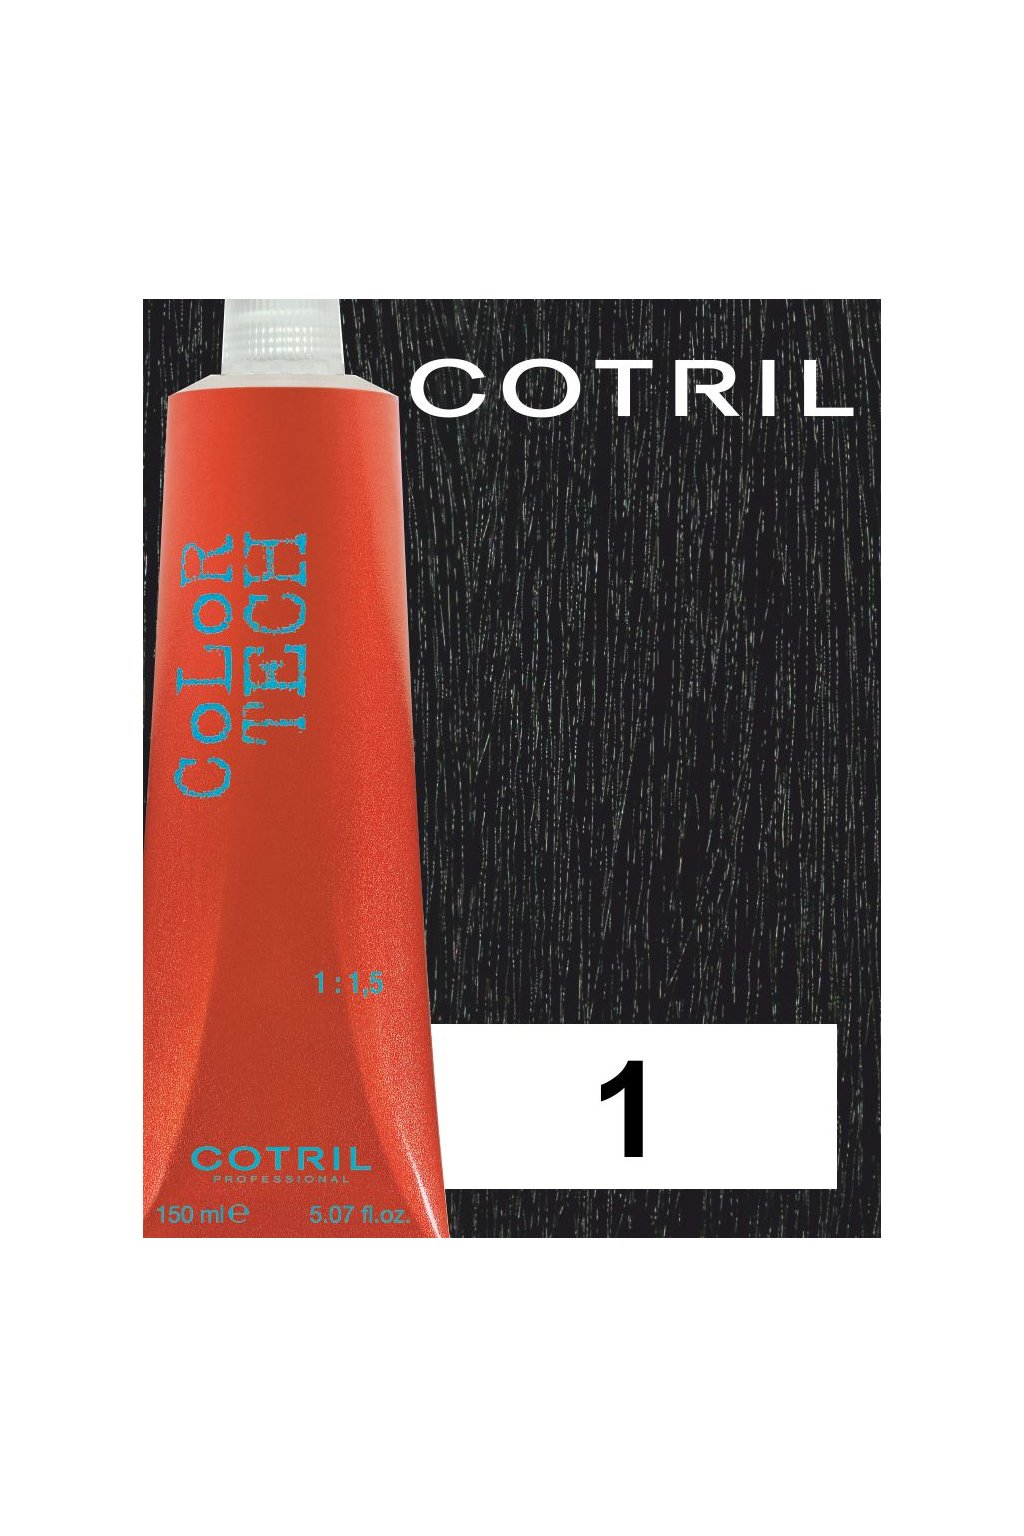 1 ct cotril